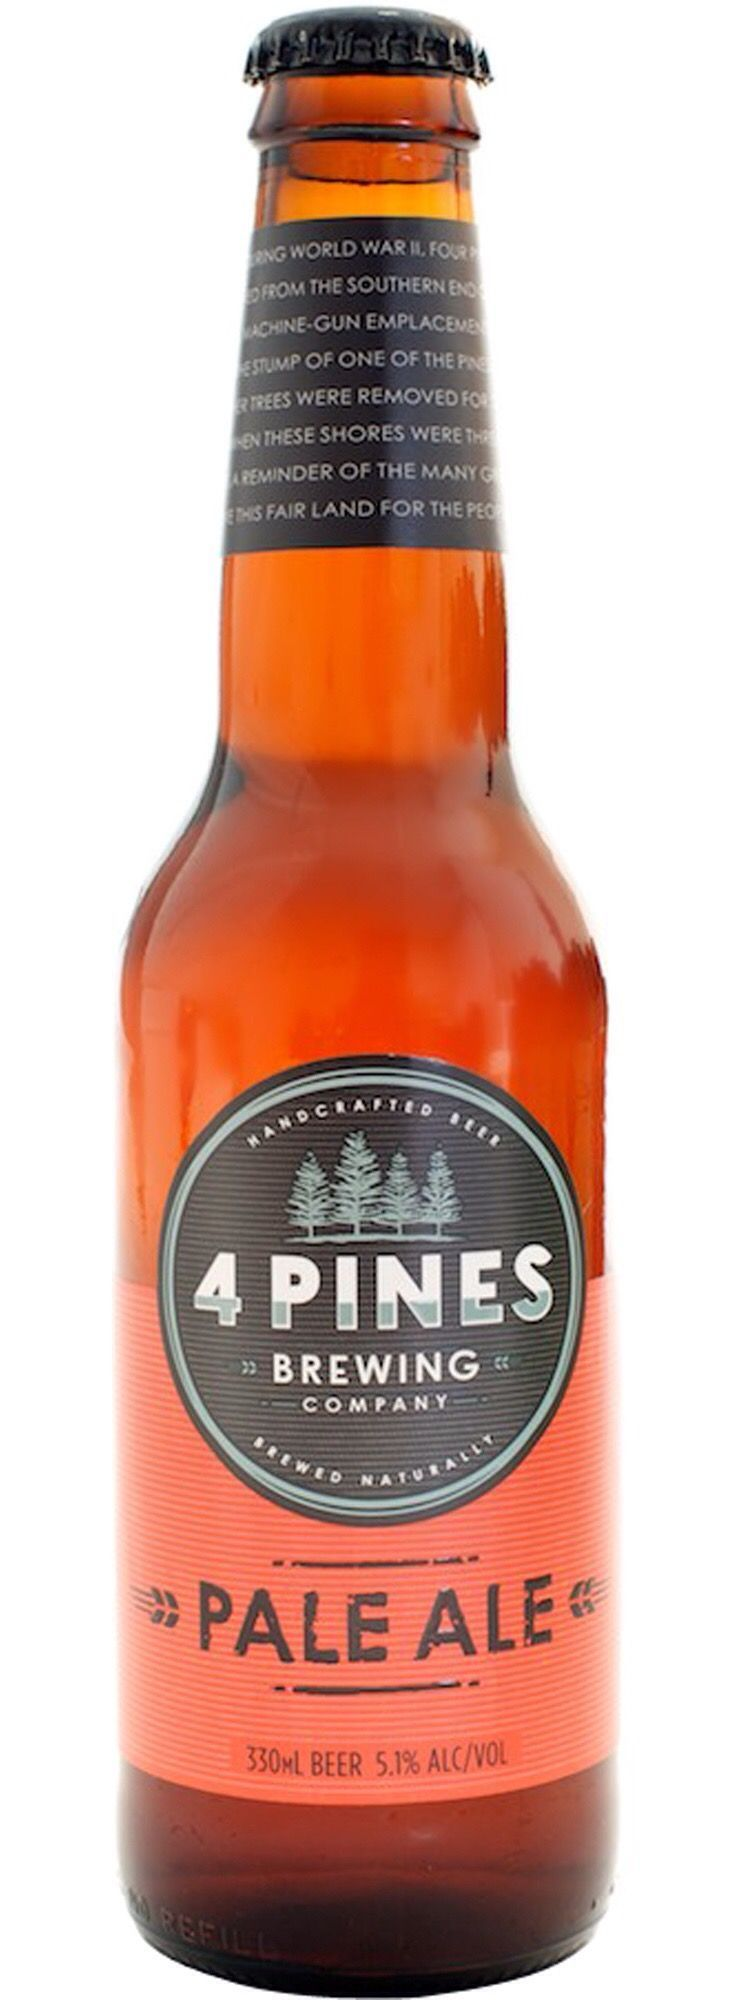 Four Pines Pale Ale Is Rated By Local Beer Drinkers As One Of The Cities Great Boutique Beers It Is Brewed In Manly One Beer Beer Brands Boutique Beer